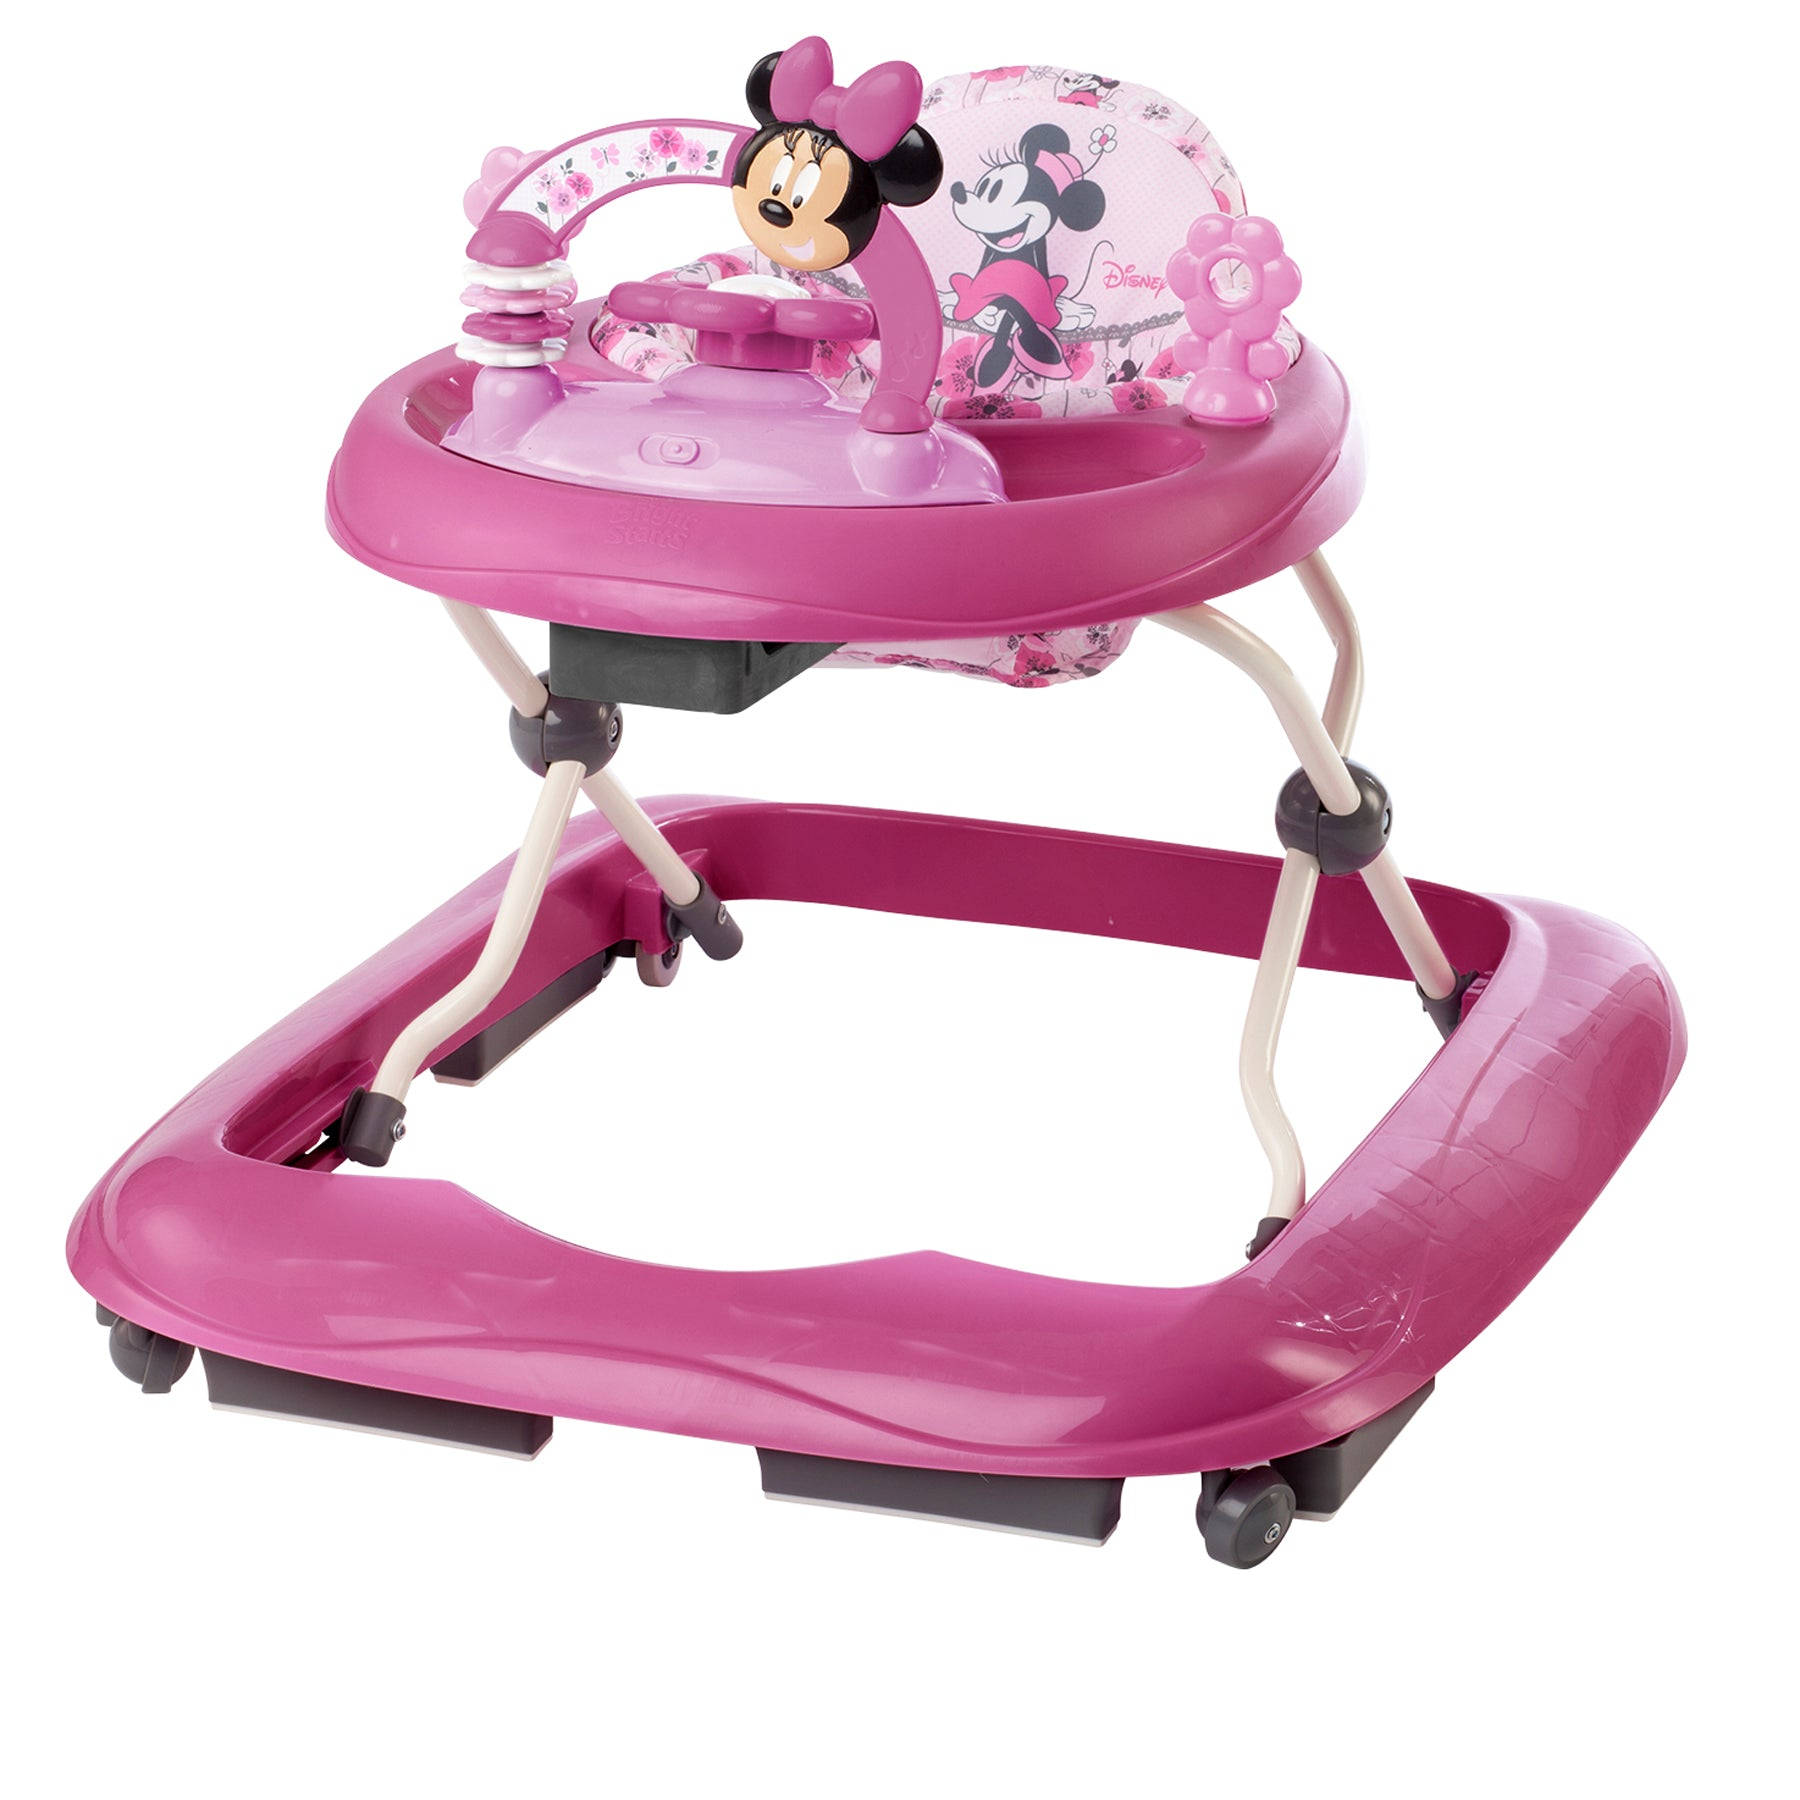 Furniture, Buying a Baby Walker A Good Idea or a Bad Joke